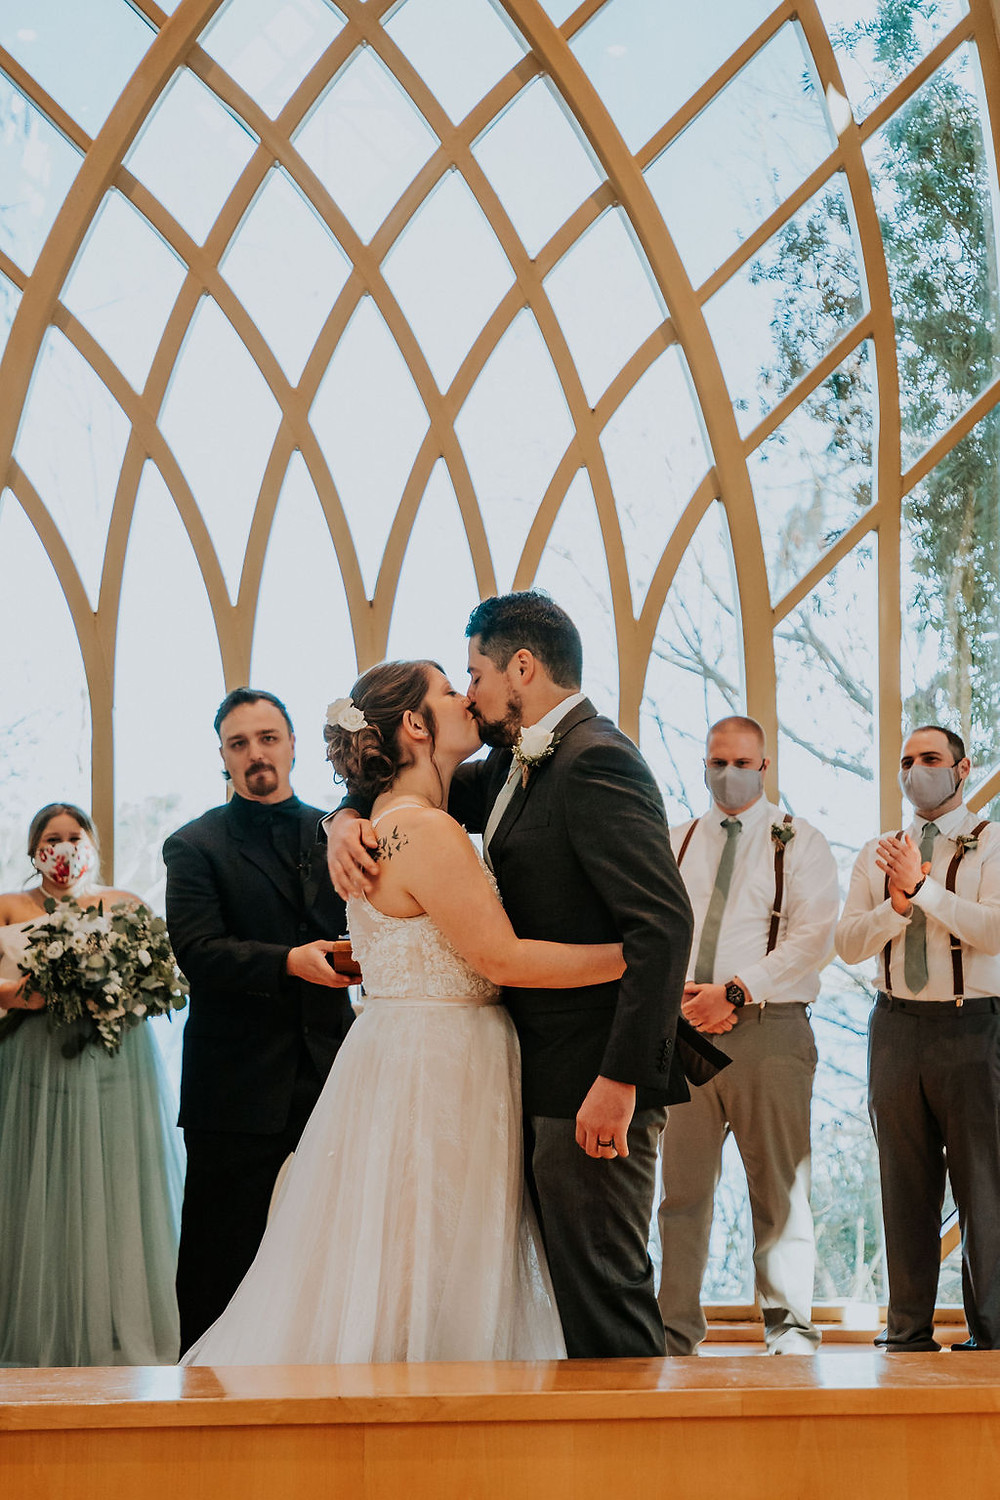 Bride & Groom's first kiss in front of the architectural arched windows of the Baughman Center in Gainesville, Florida during their wedding ceremony.